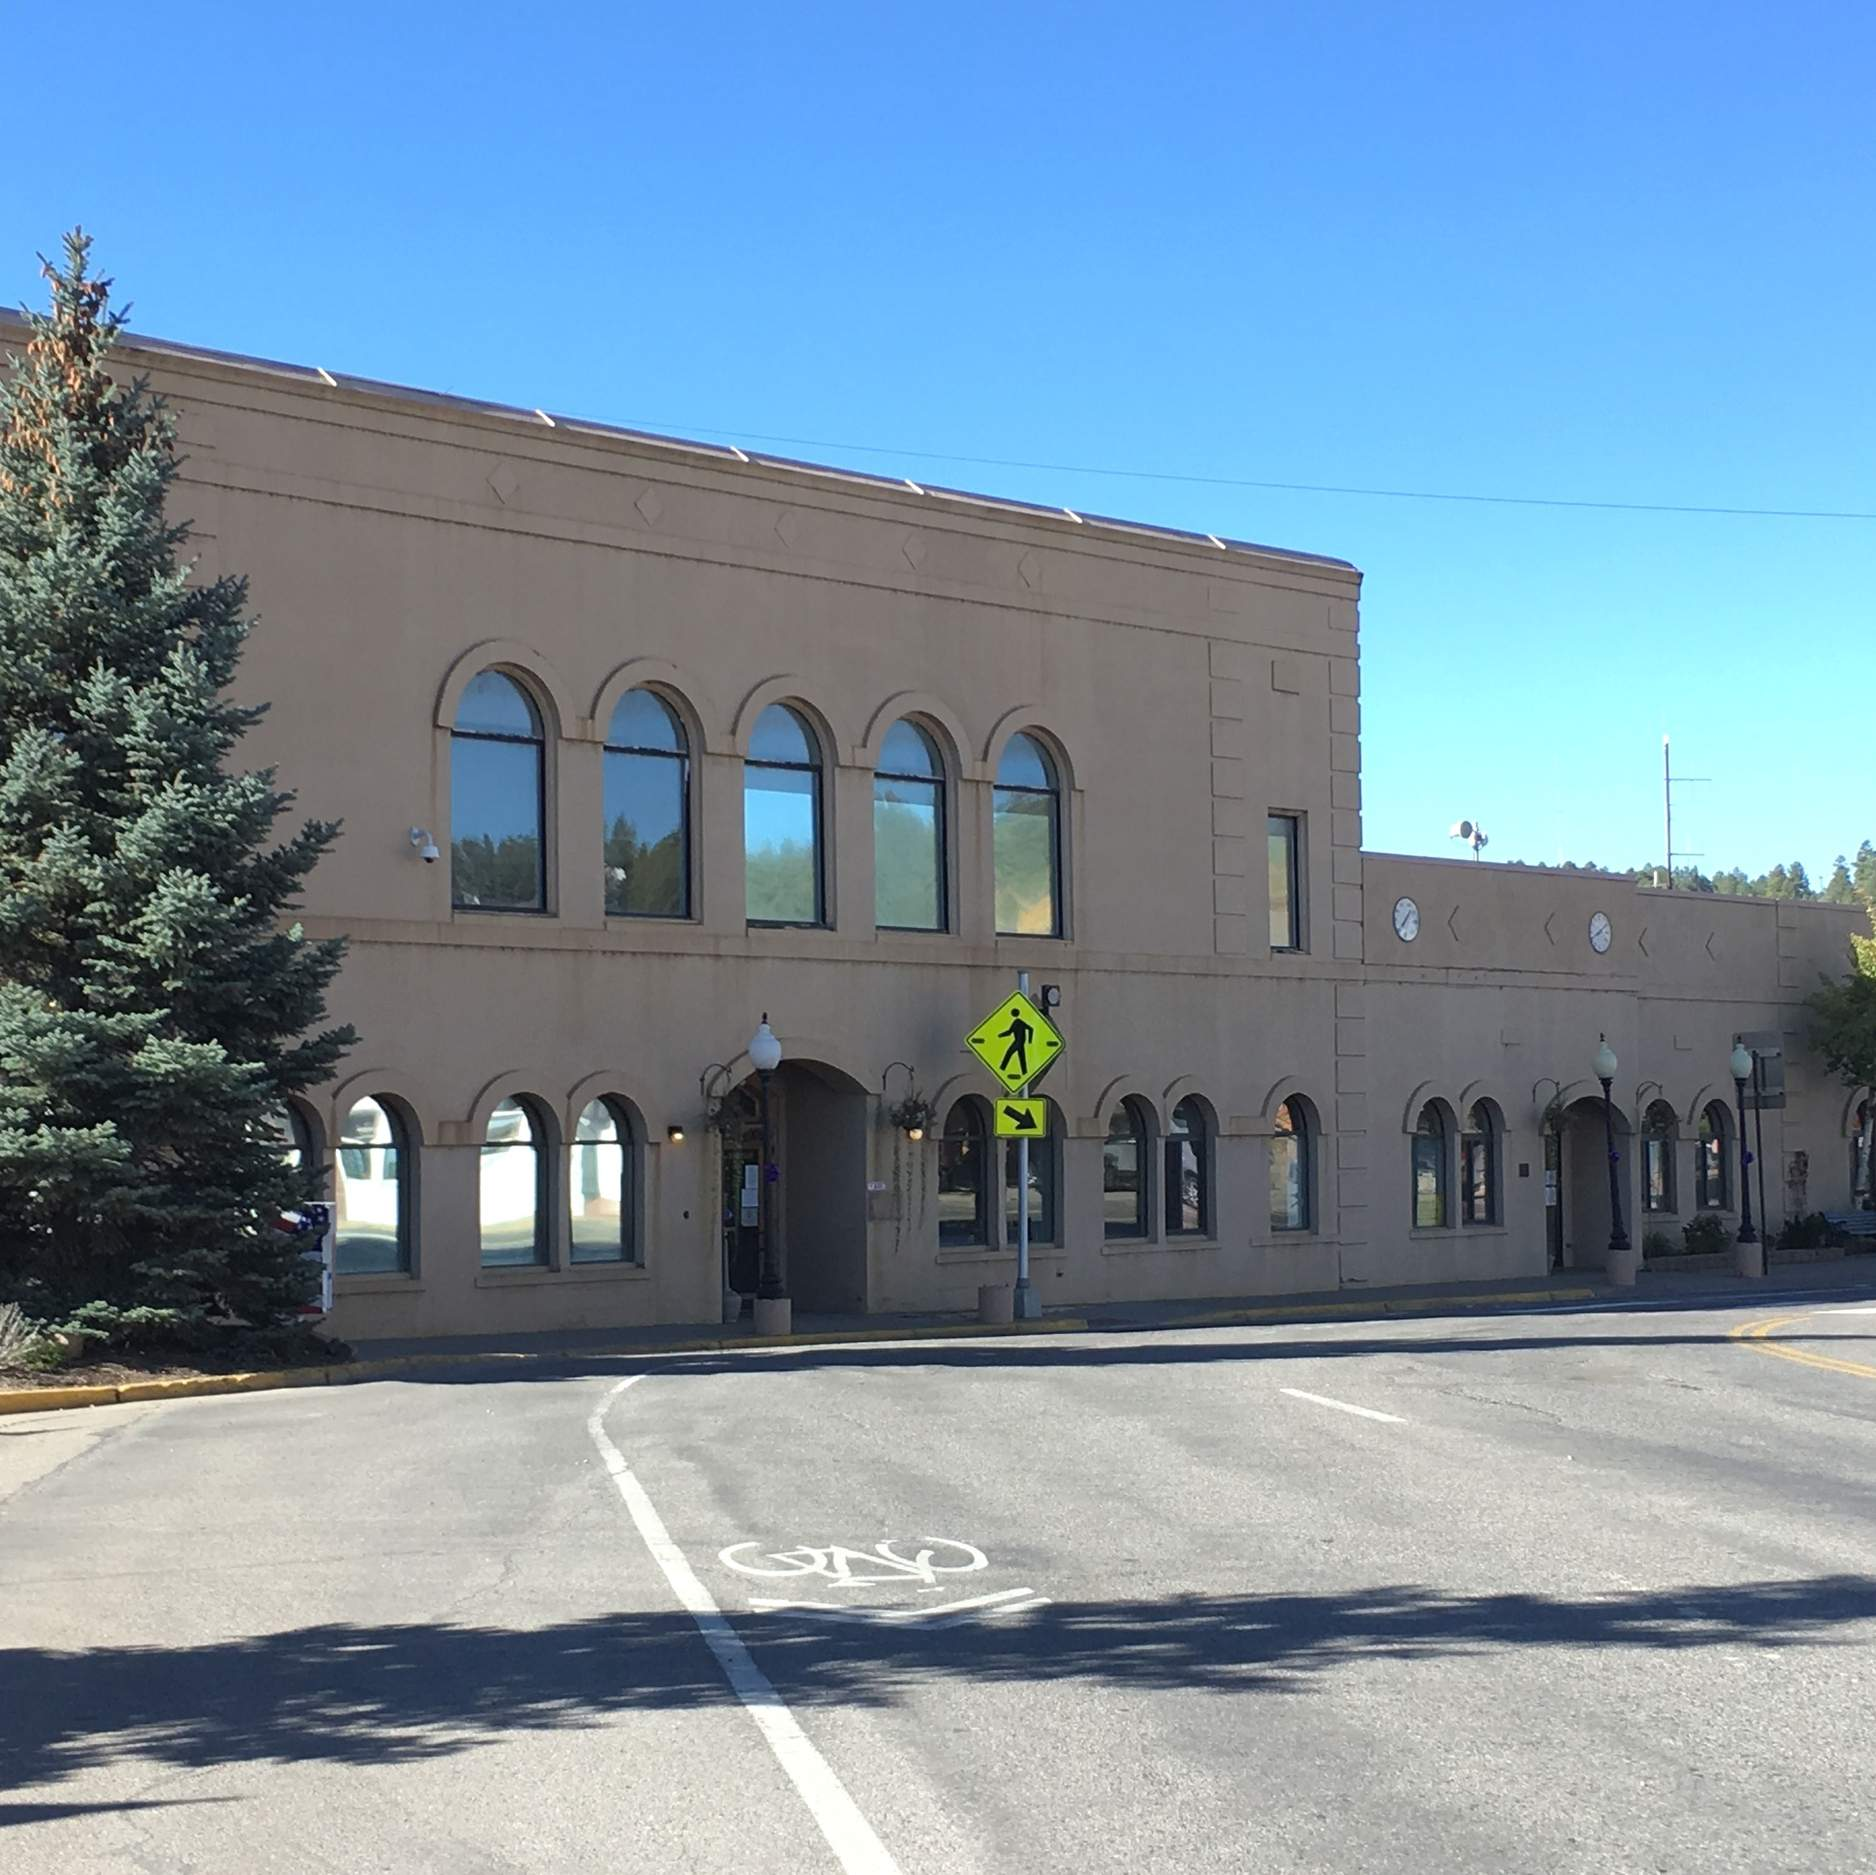 Colorado Judicial Branch: Study: Return To Archuleta Courthouse Ill-advised Until